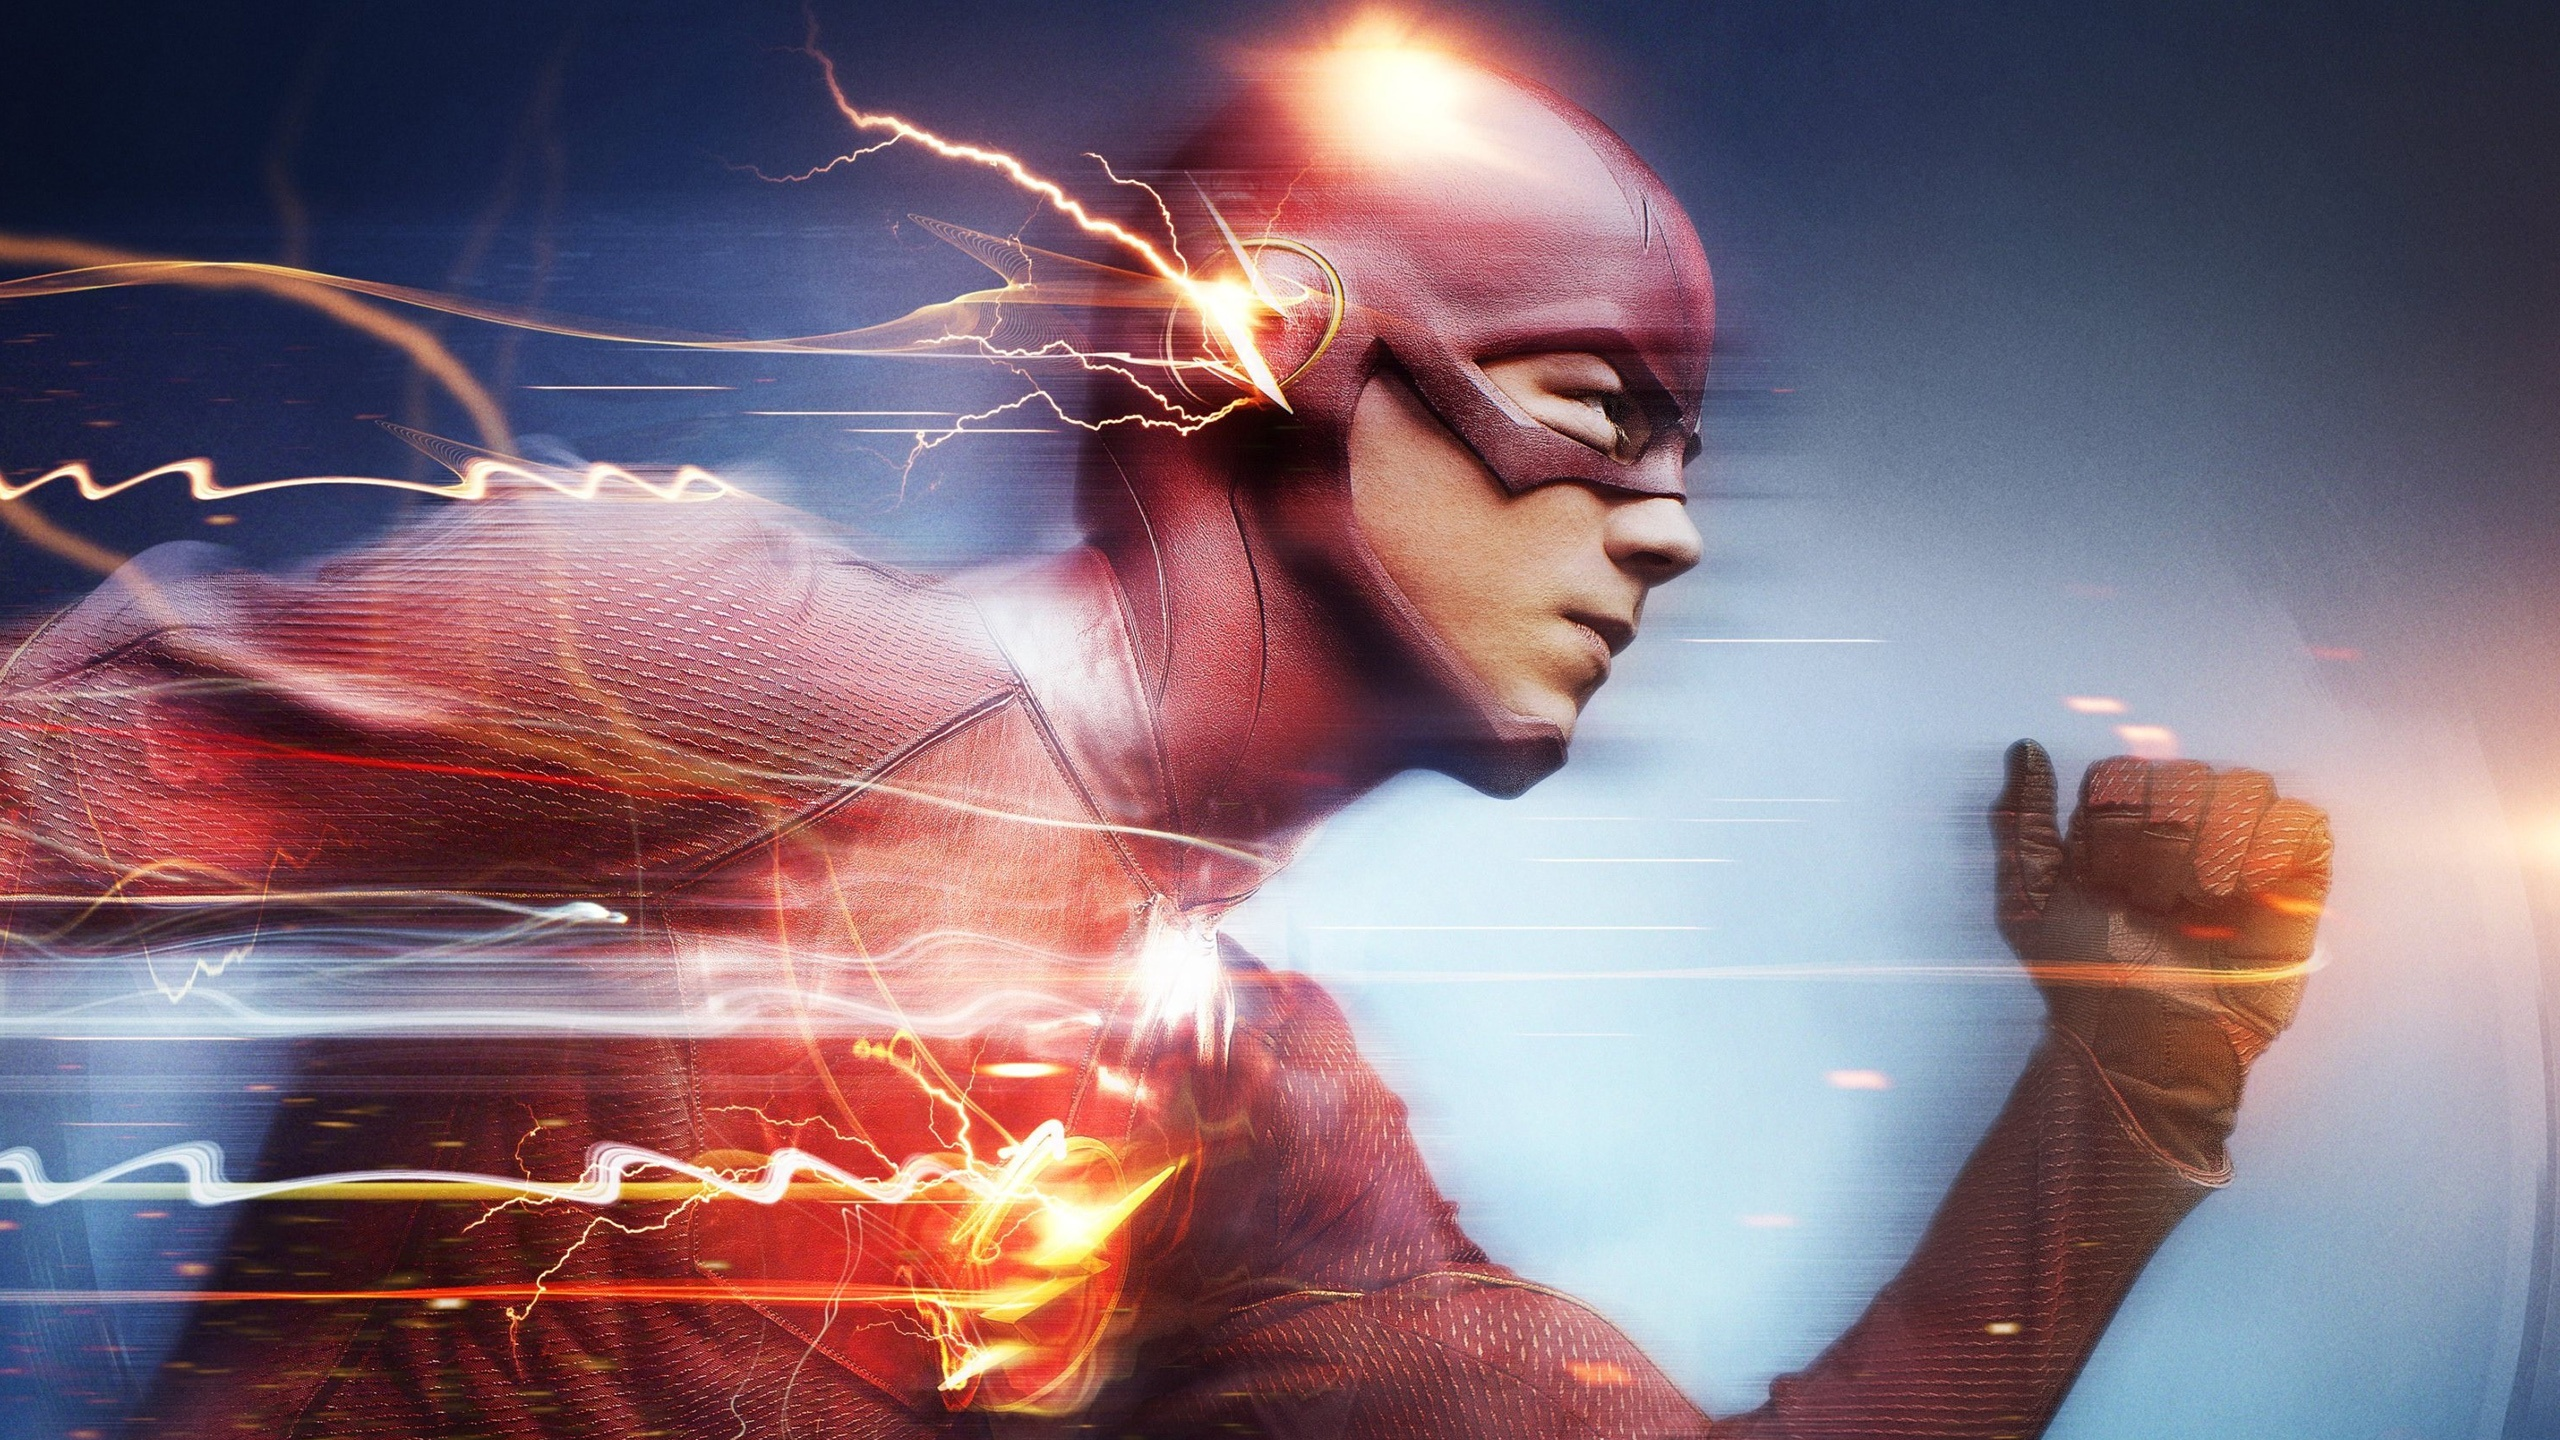 Barry Allen The Flash Wallpapers HD Wallpapers 2560x1440